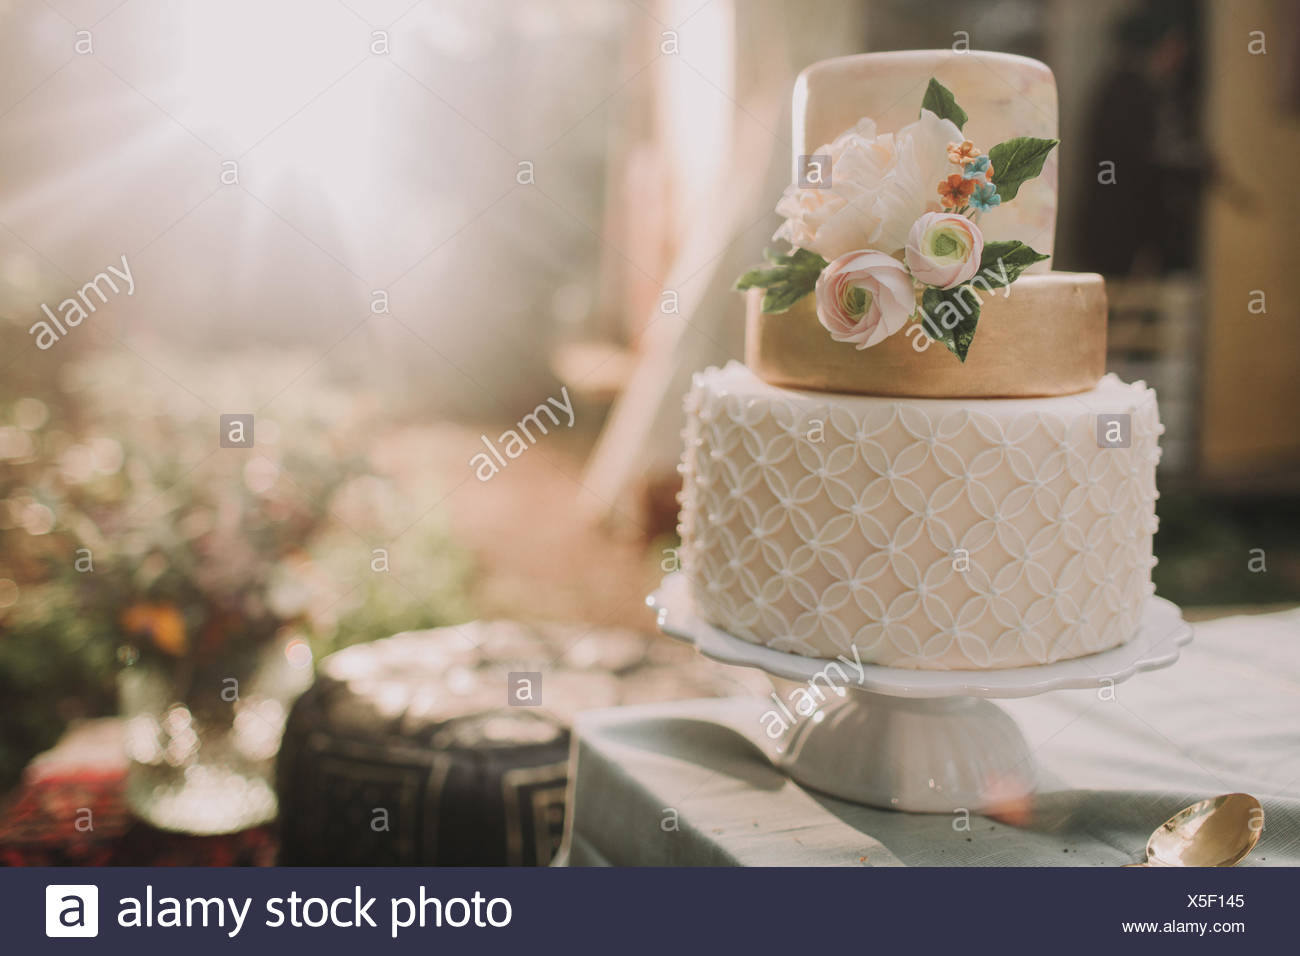 Wedding Cake On At Alternative Wedding Celebration Stockfotos